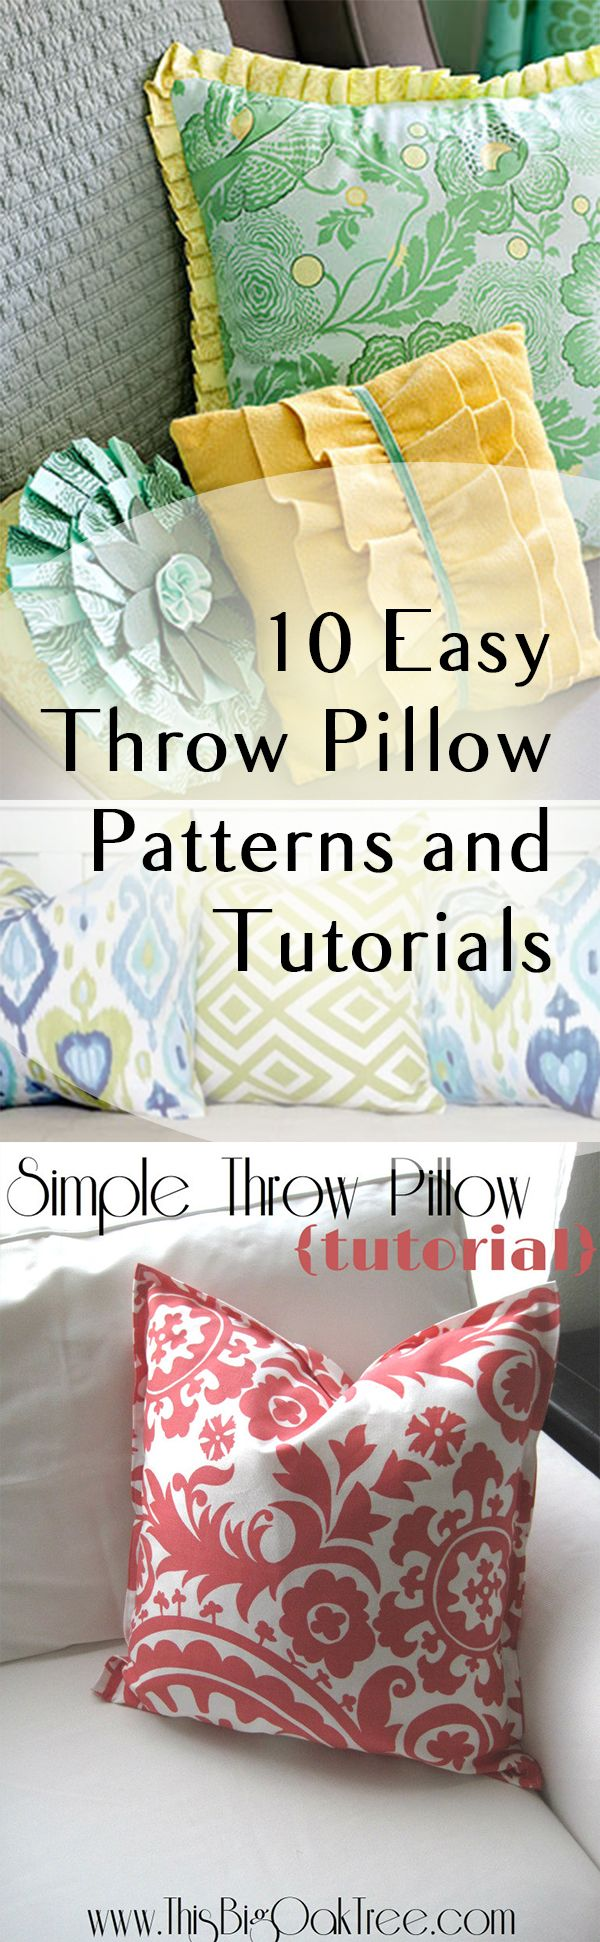 10 Sencillas tutorías con patrones sobre cojines - 10 Easy DIY Throw Pillow Patterns. Cute designs, patterns and tutorials.